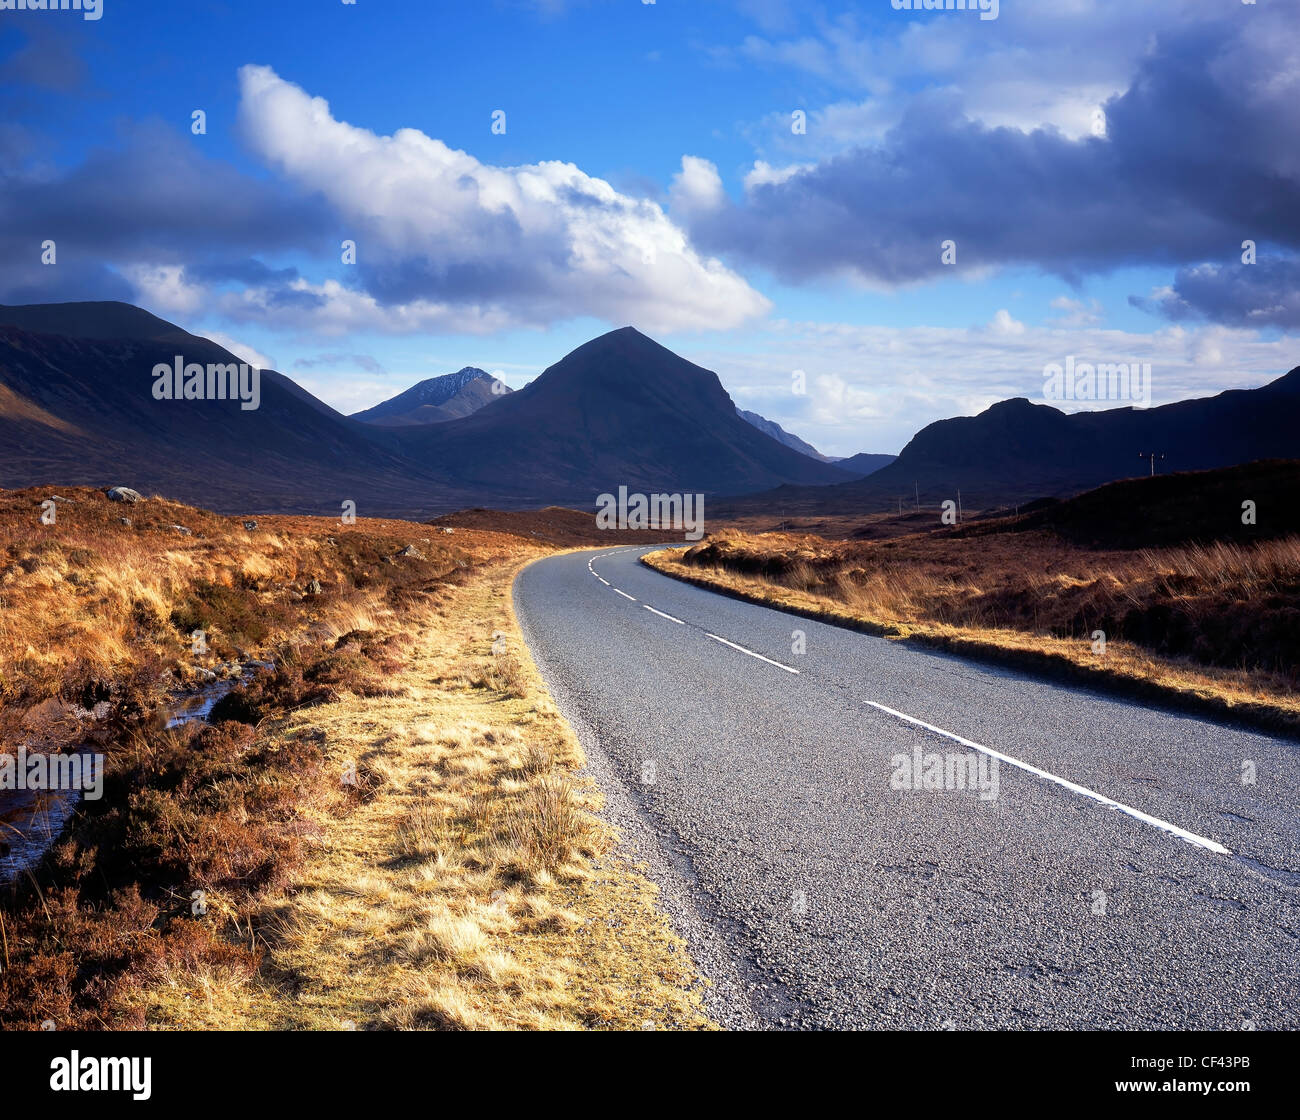 A road leading towards the Cuillin mountains on the Isle of Skye. - Stock Image